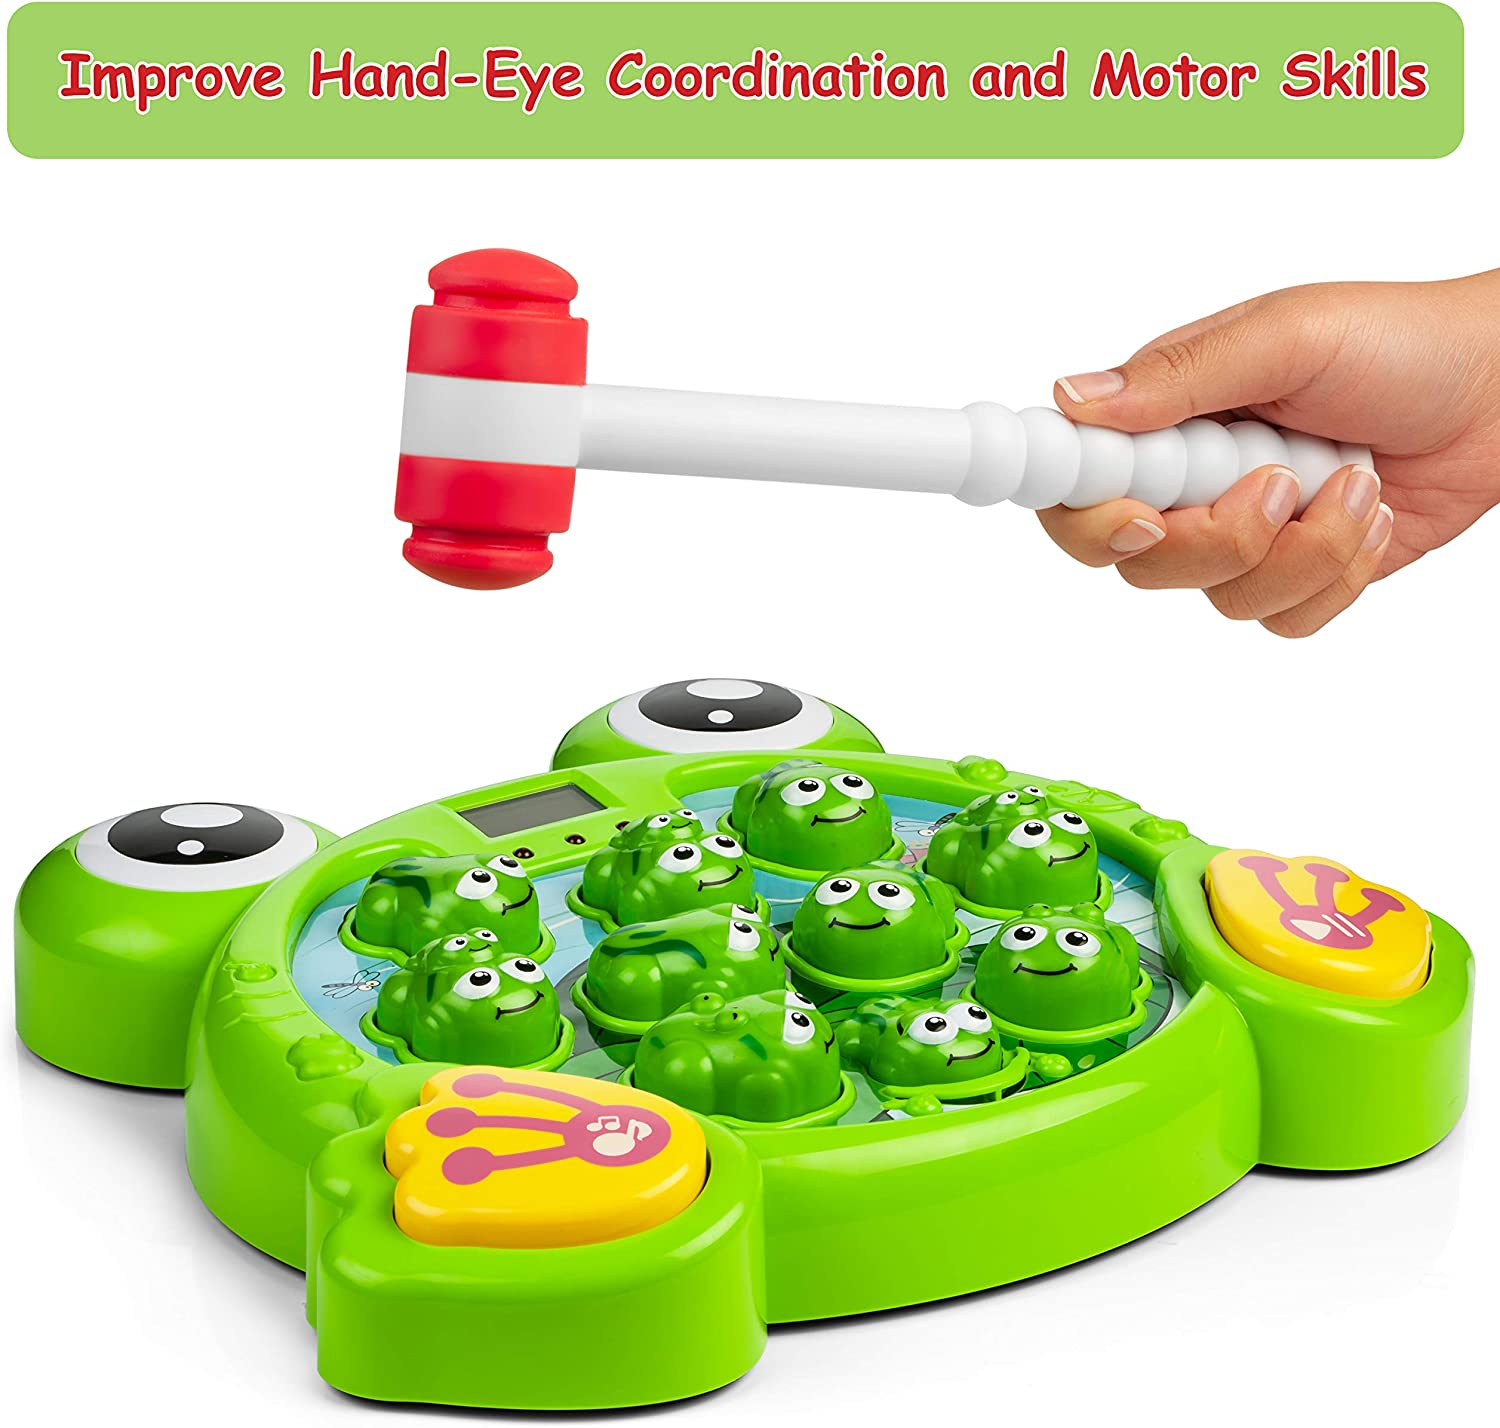 Interactive Toys for 2 Developmental Games for Coordination Building Includes 2 Hammers 3 Whack A Frog Game and 4 Year Old Boys and Girls Whack a Mole Style Family Game for Toddlers